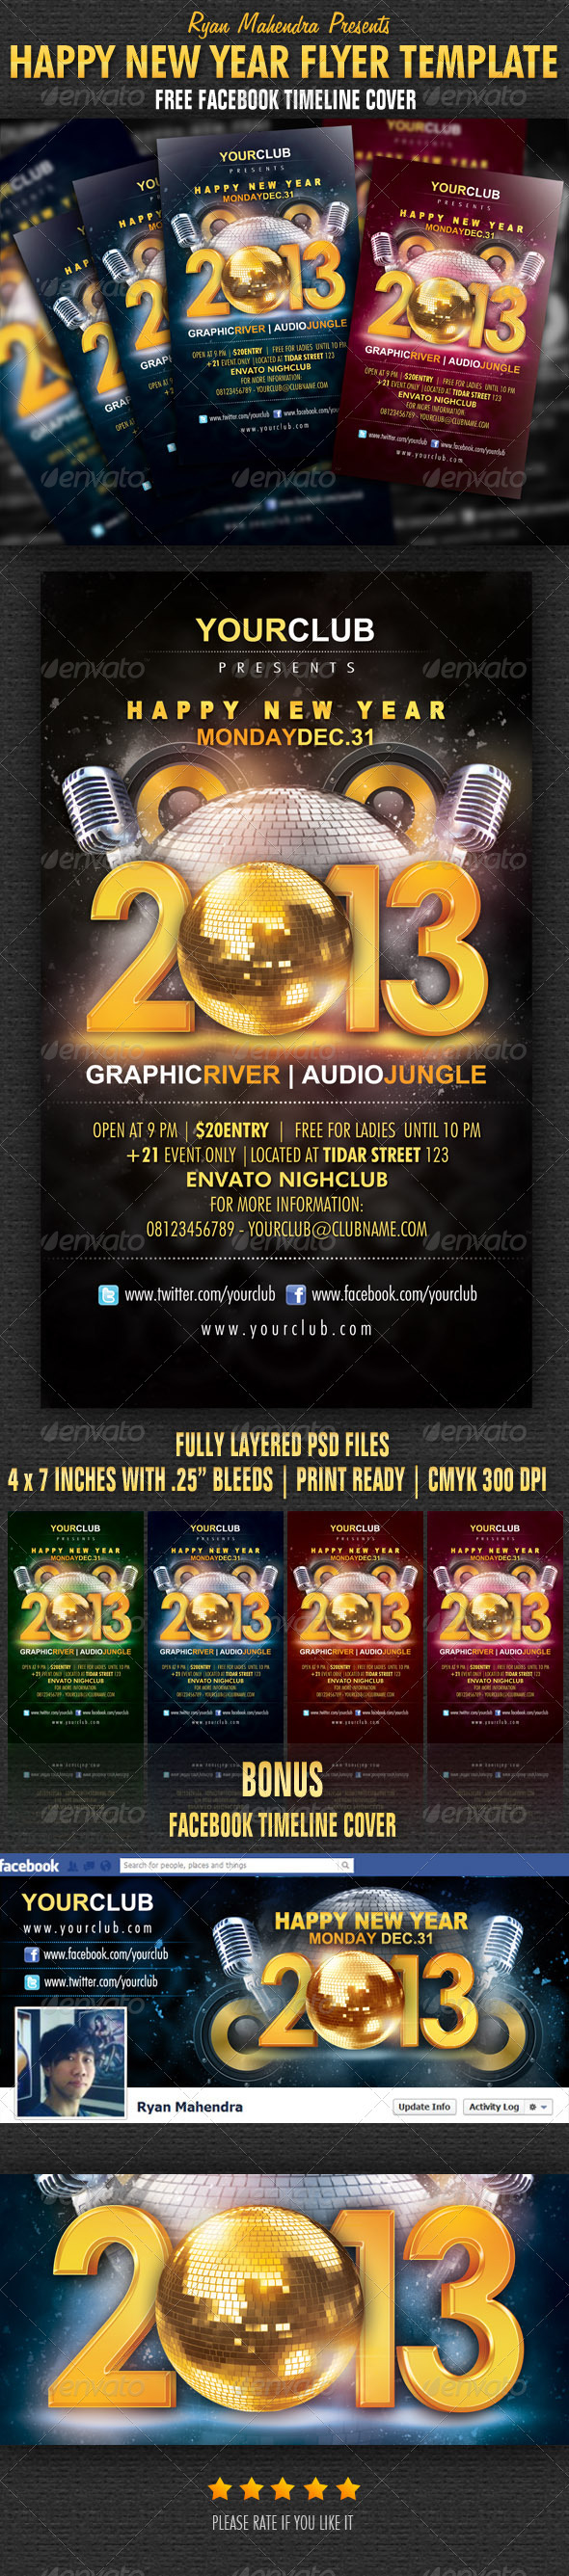 Happy New Year Flyer Template - Flyers Print Templates